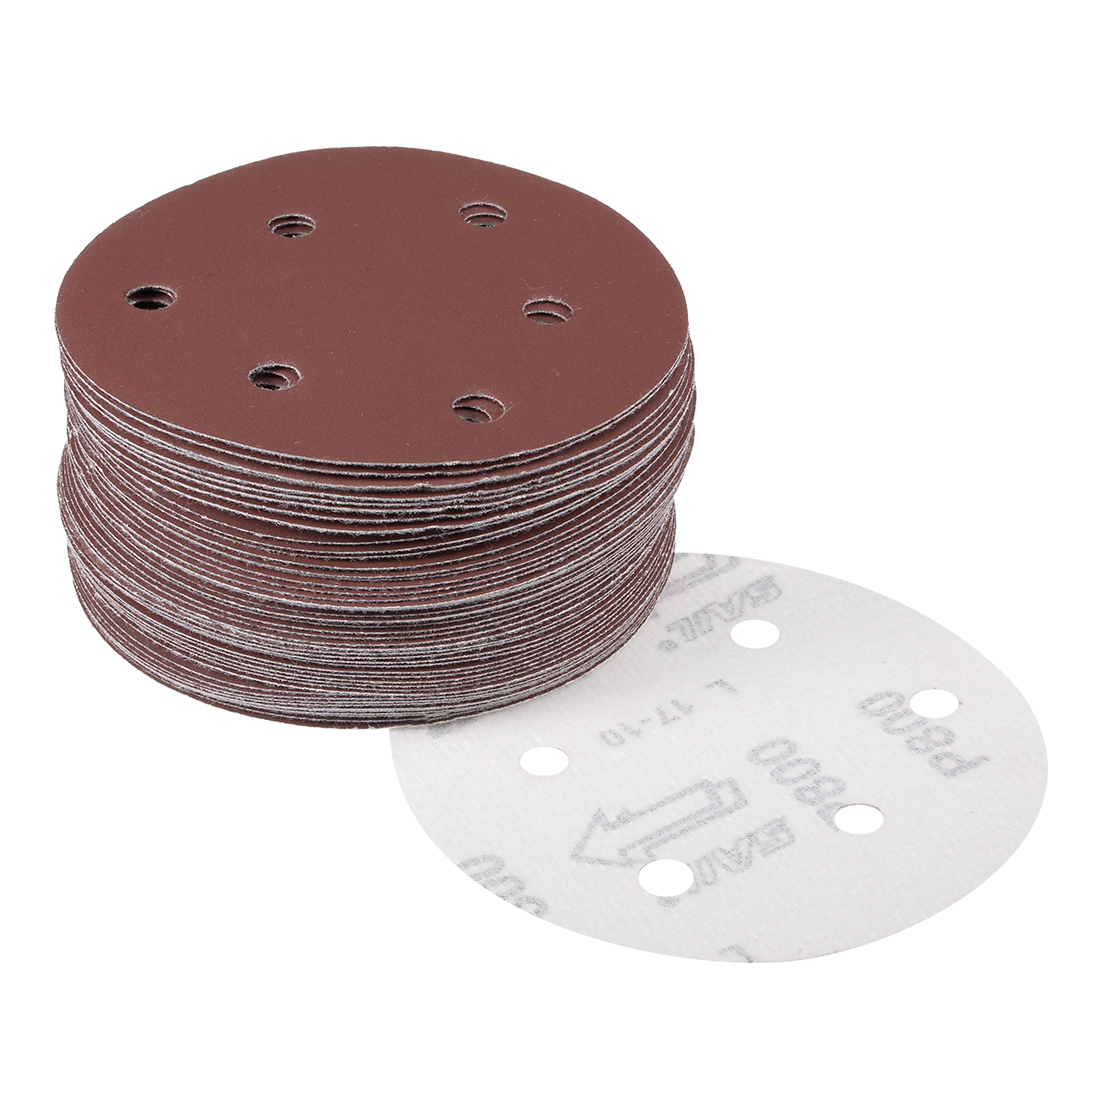 "5/"" Hook /& Loop Sanding Discs 800 Grit Round SandPaper Sanding Sheet 5 Inch 125mm"